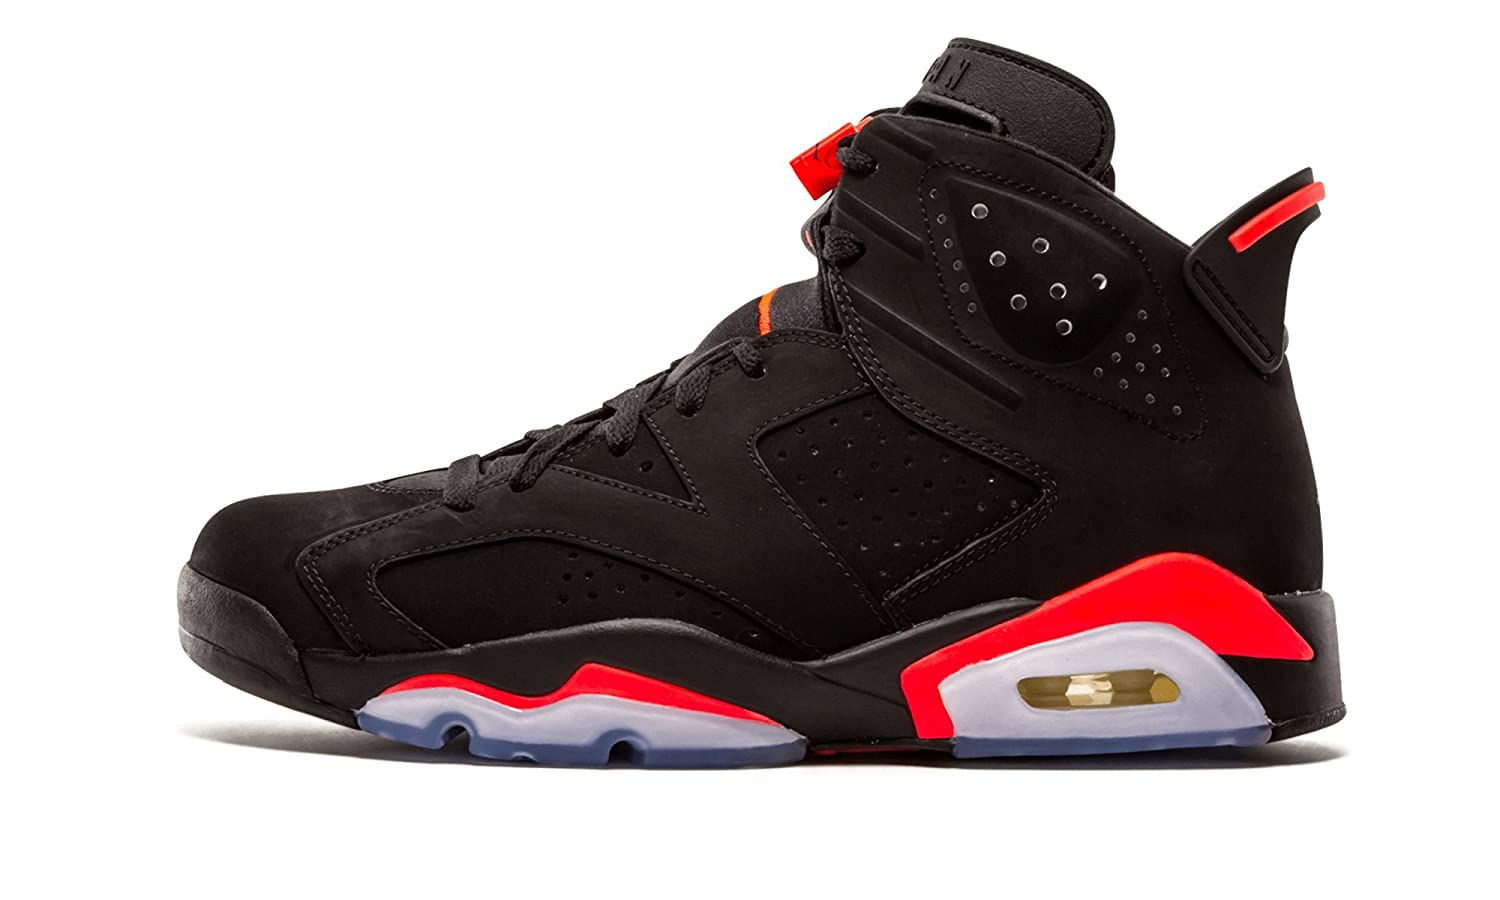 nike air jordan 6 retro shoes - black/infrared